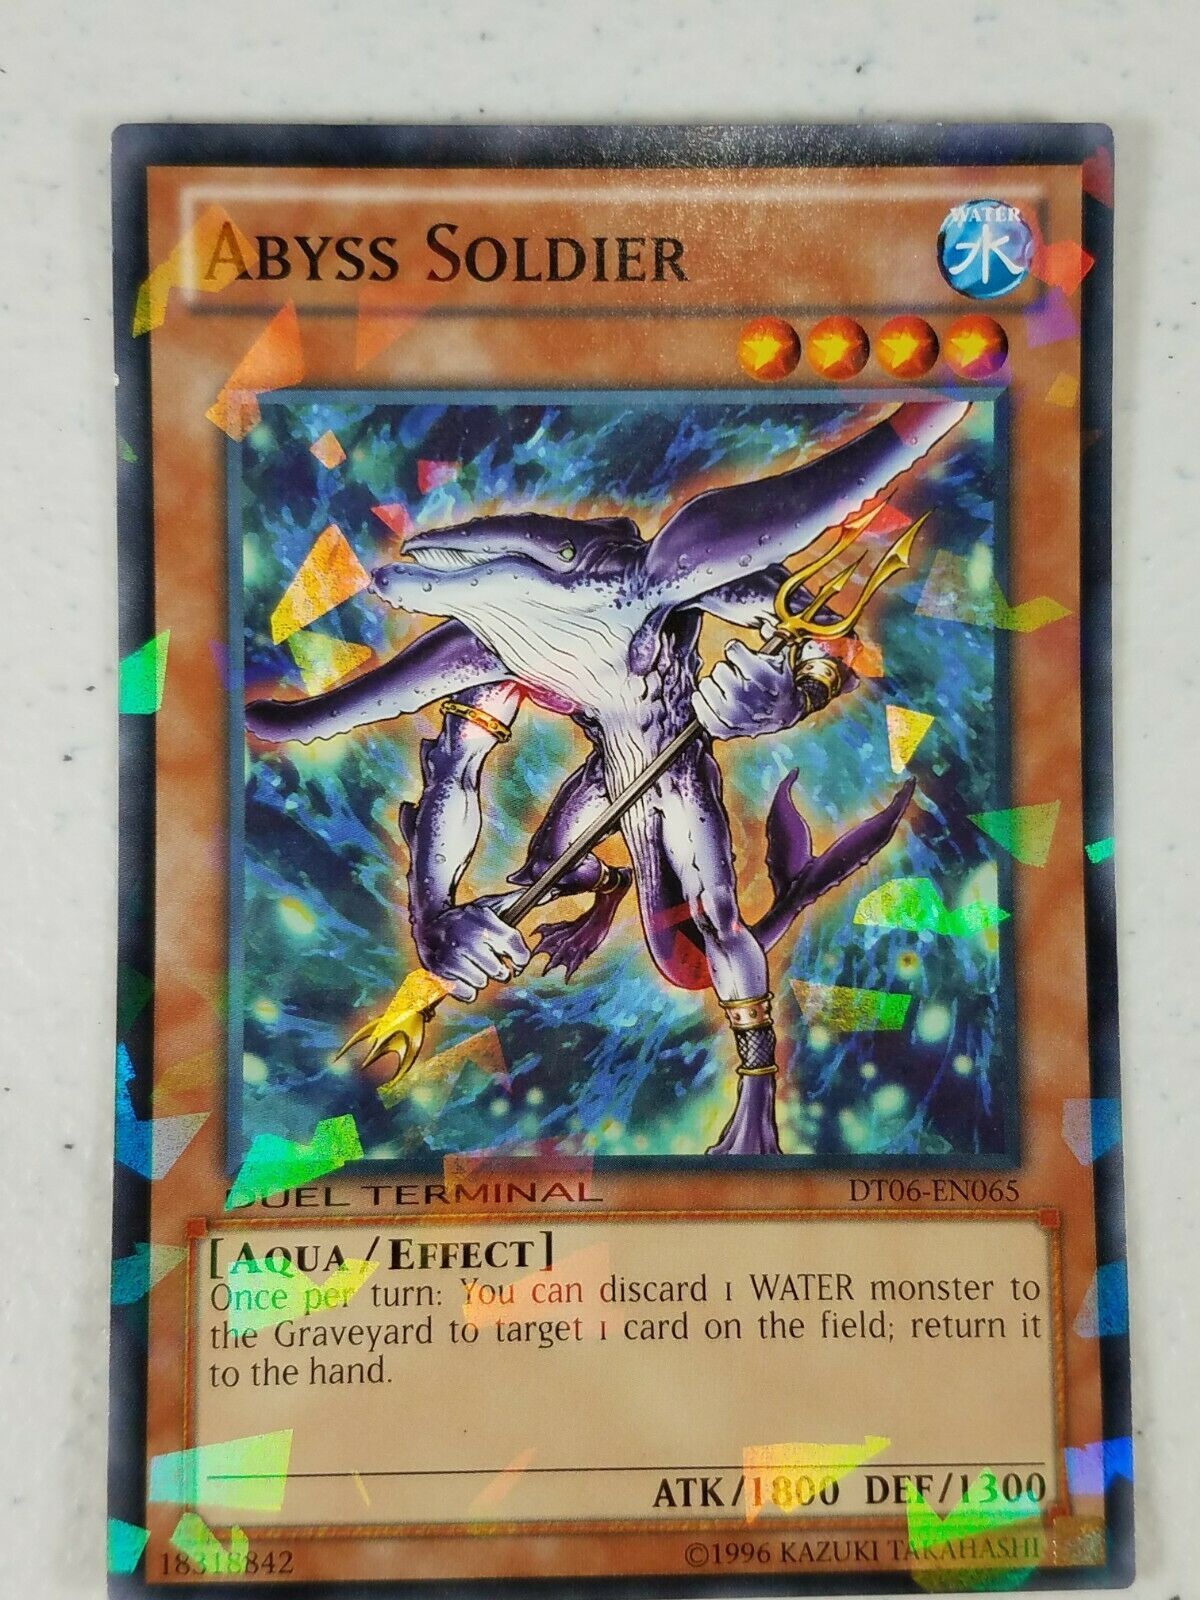 Yu-gi-oh! Trading Card - Abyss Soldier - DT06-EN065 - Normal Parallel Rare